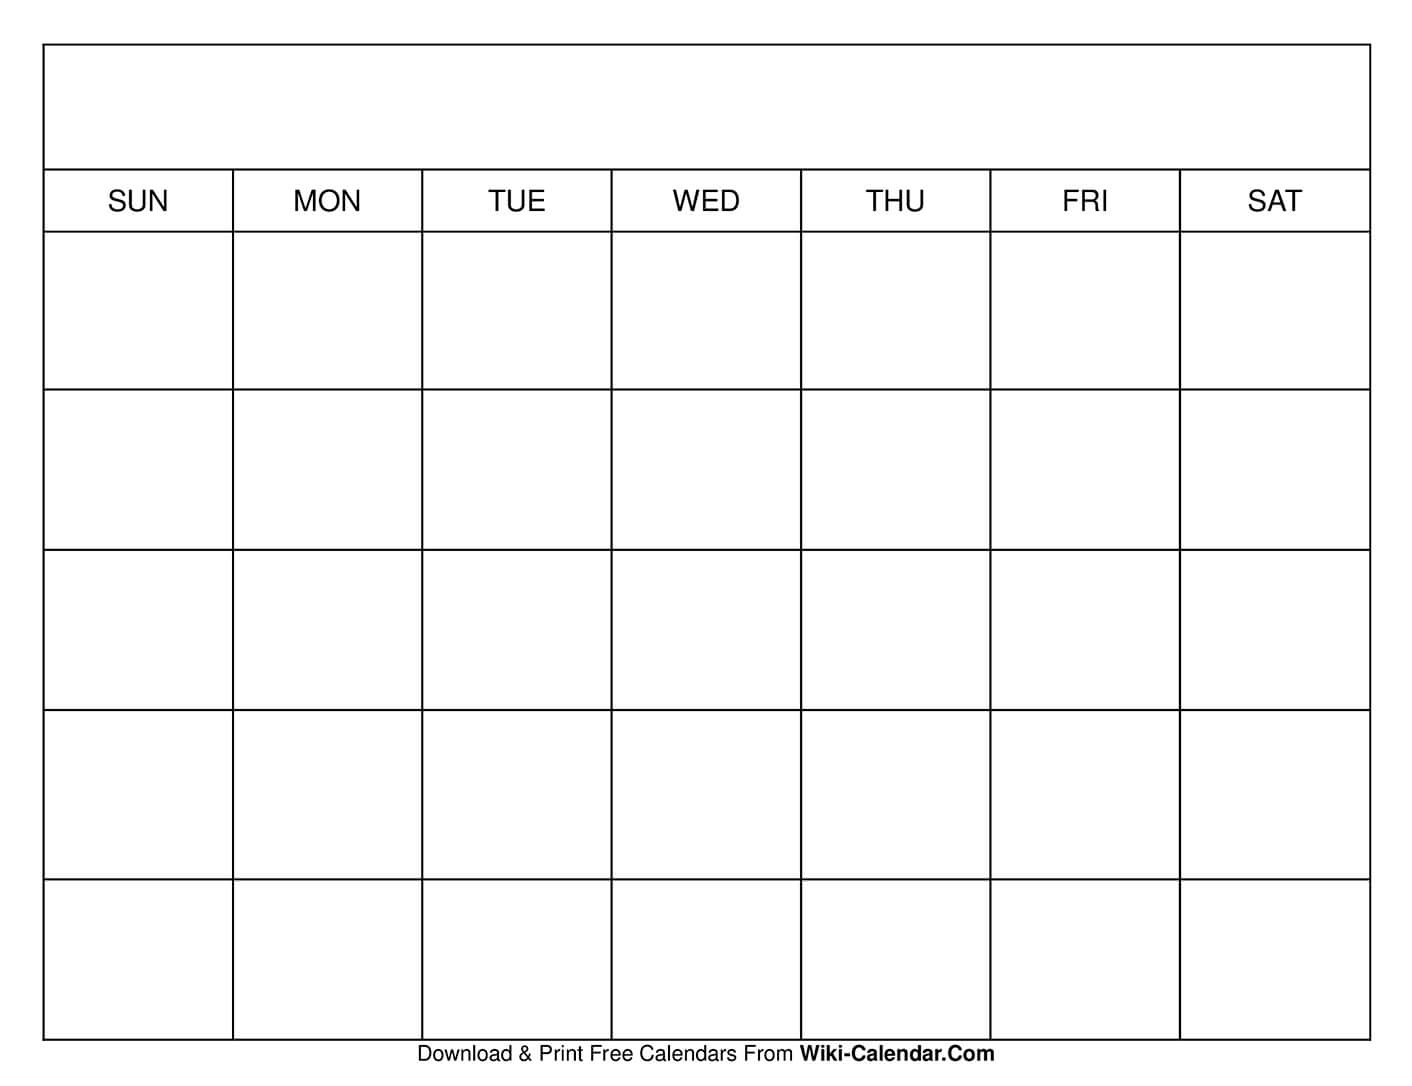 Get Free Printable Calendar No Download Required